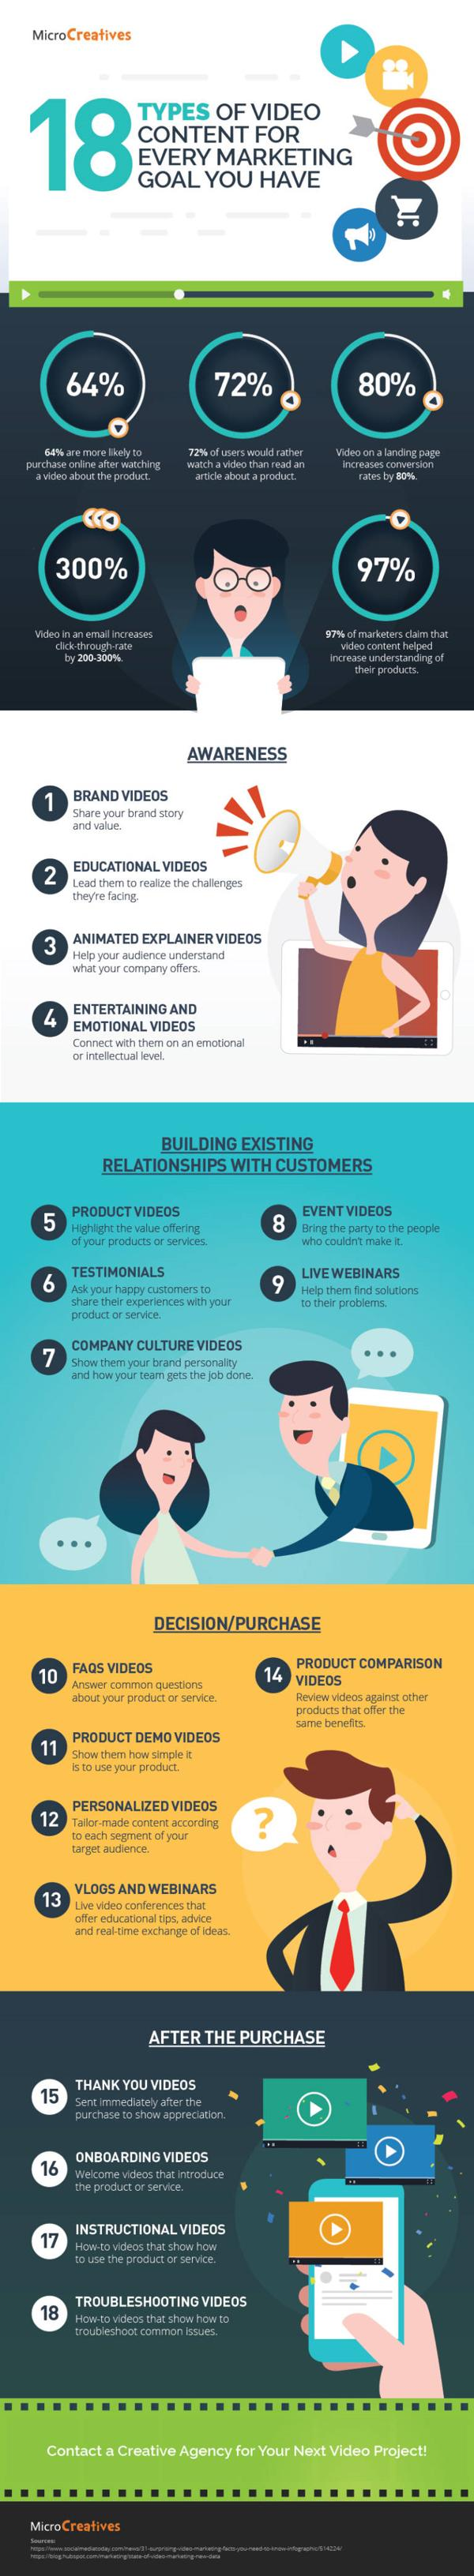 Video Marketing Approaches That Boost Engagement 1